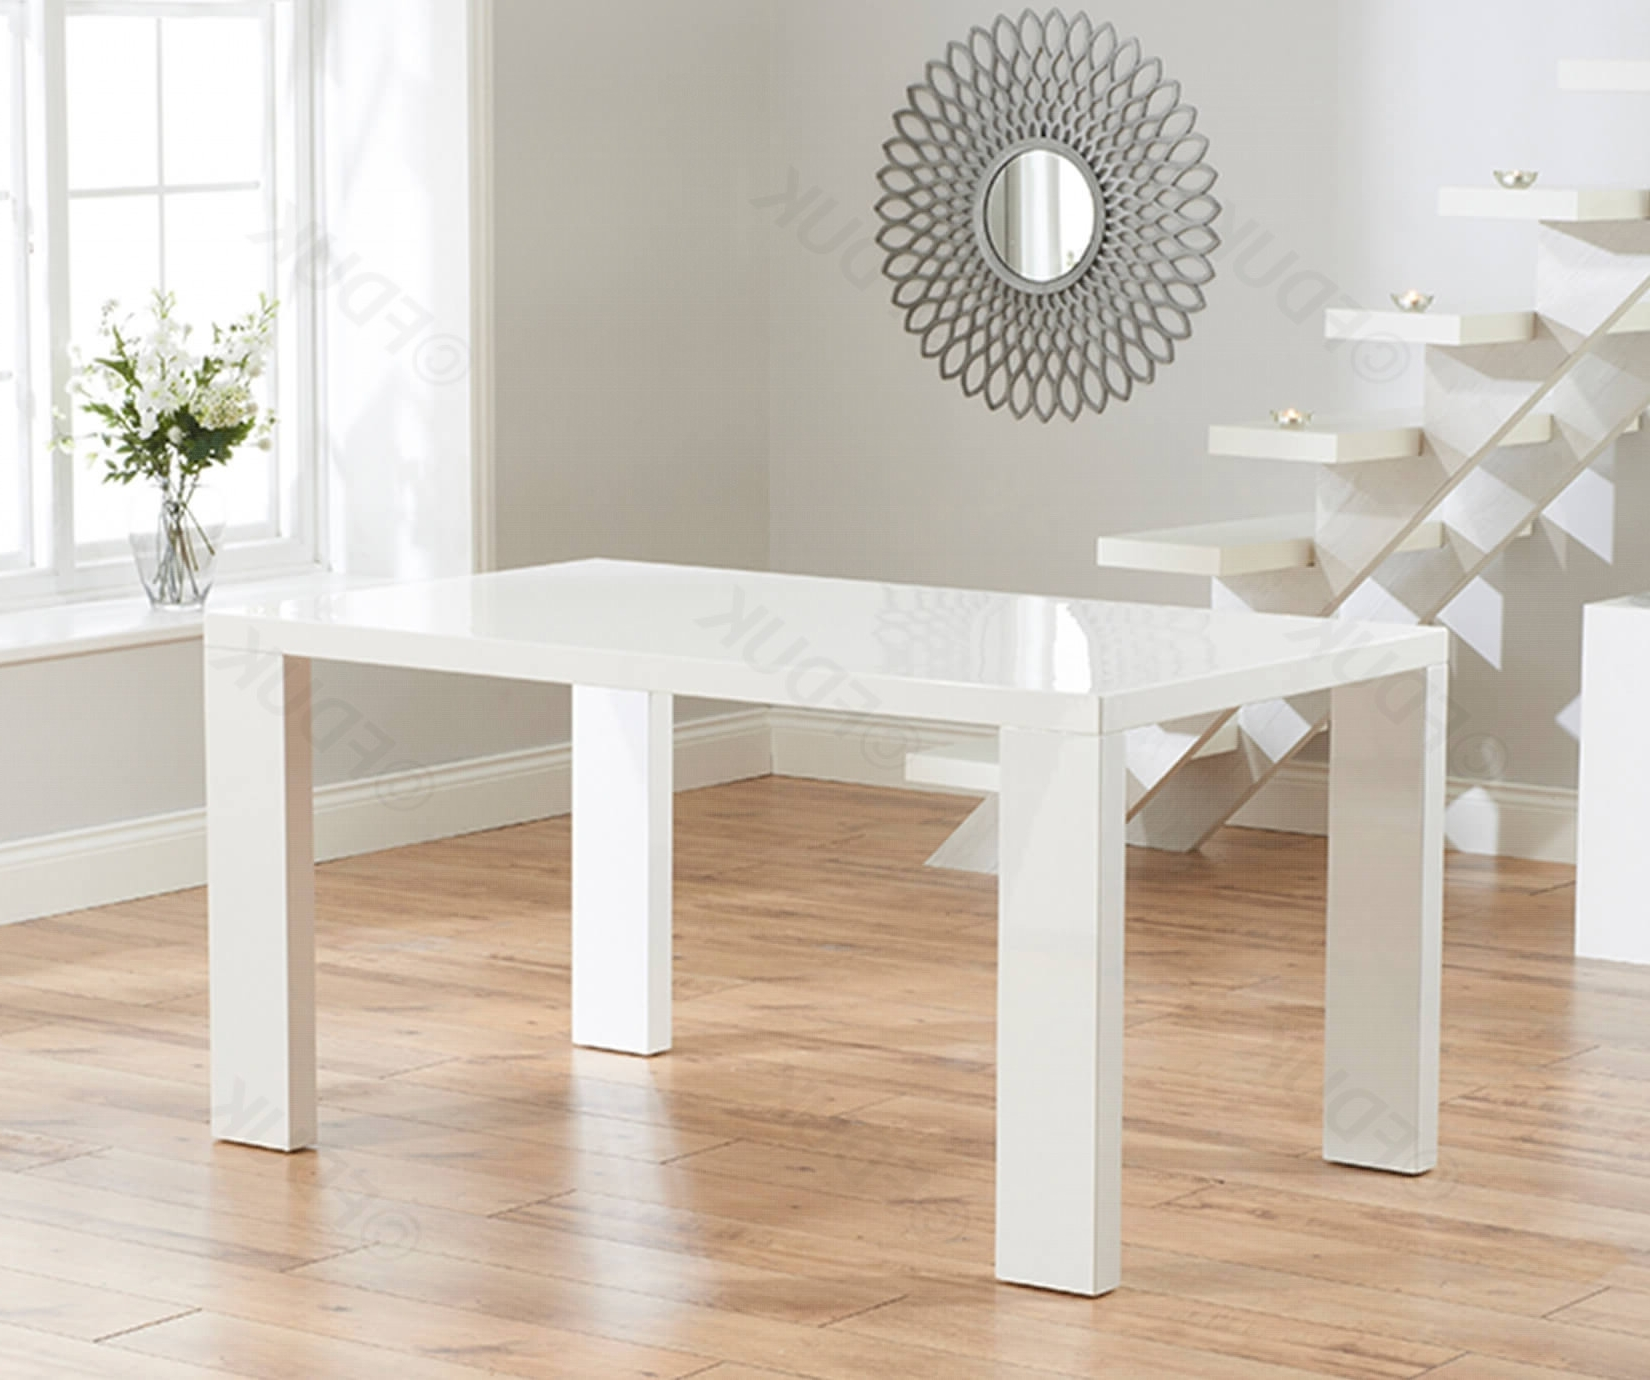 Metz 150Cm White High Gloss Dining Table (View 9 of 25)